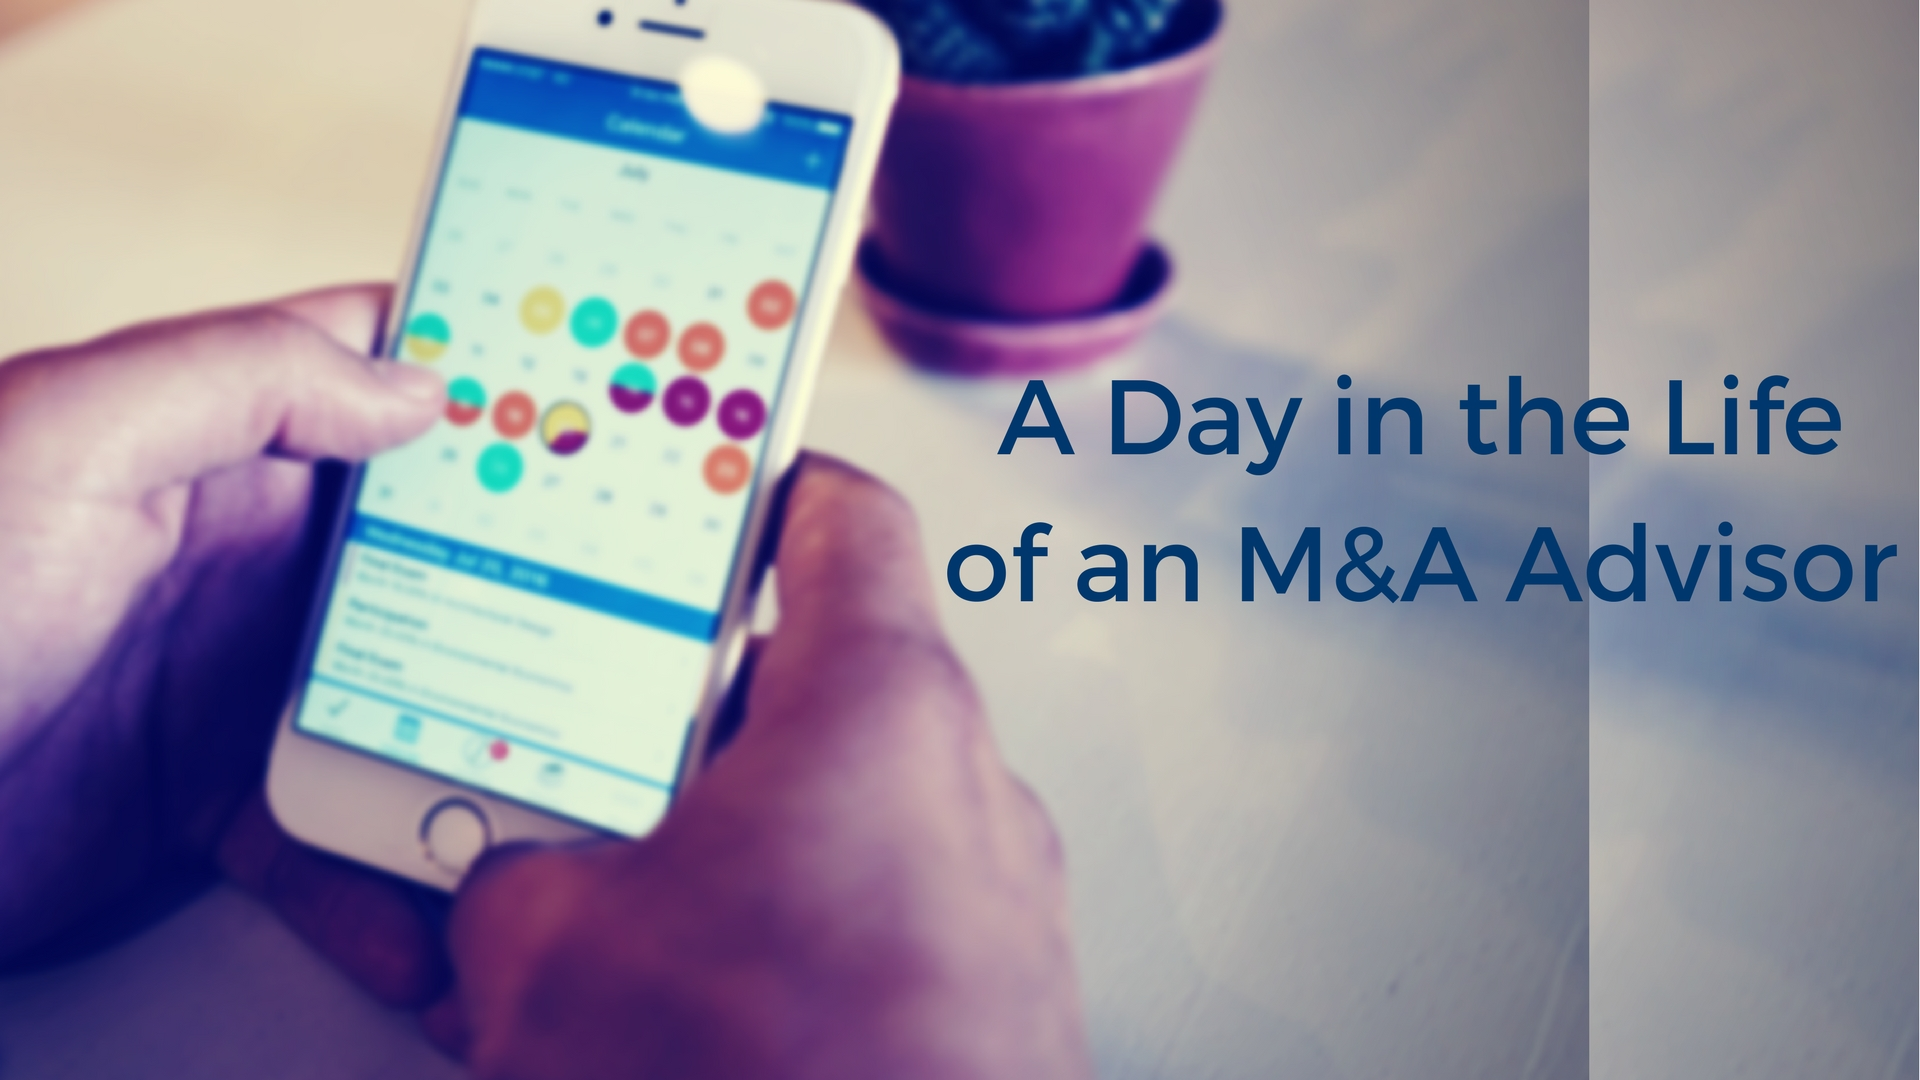 A Day-In-The-Life of An M&A Advisor